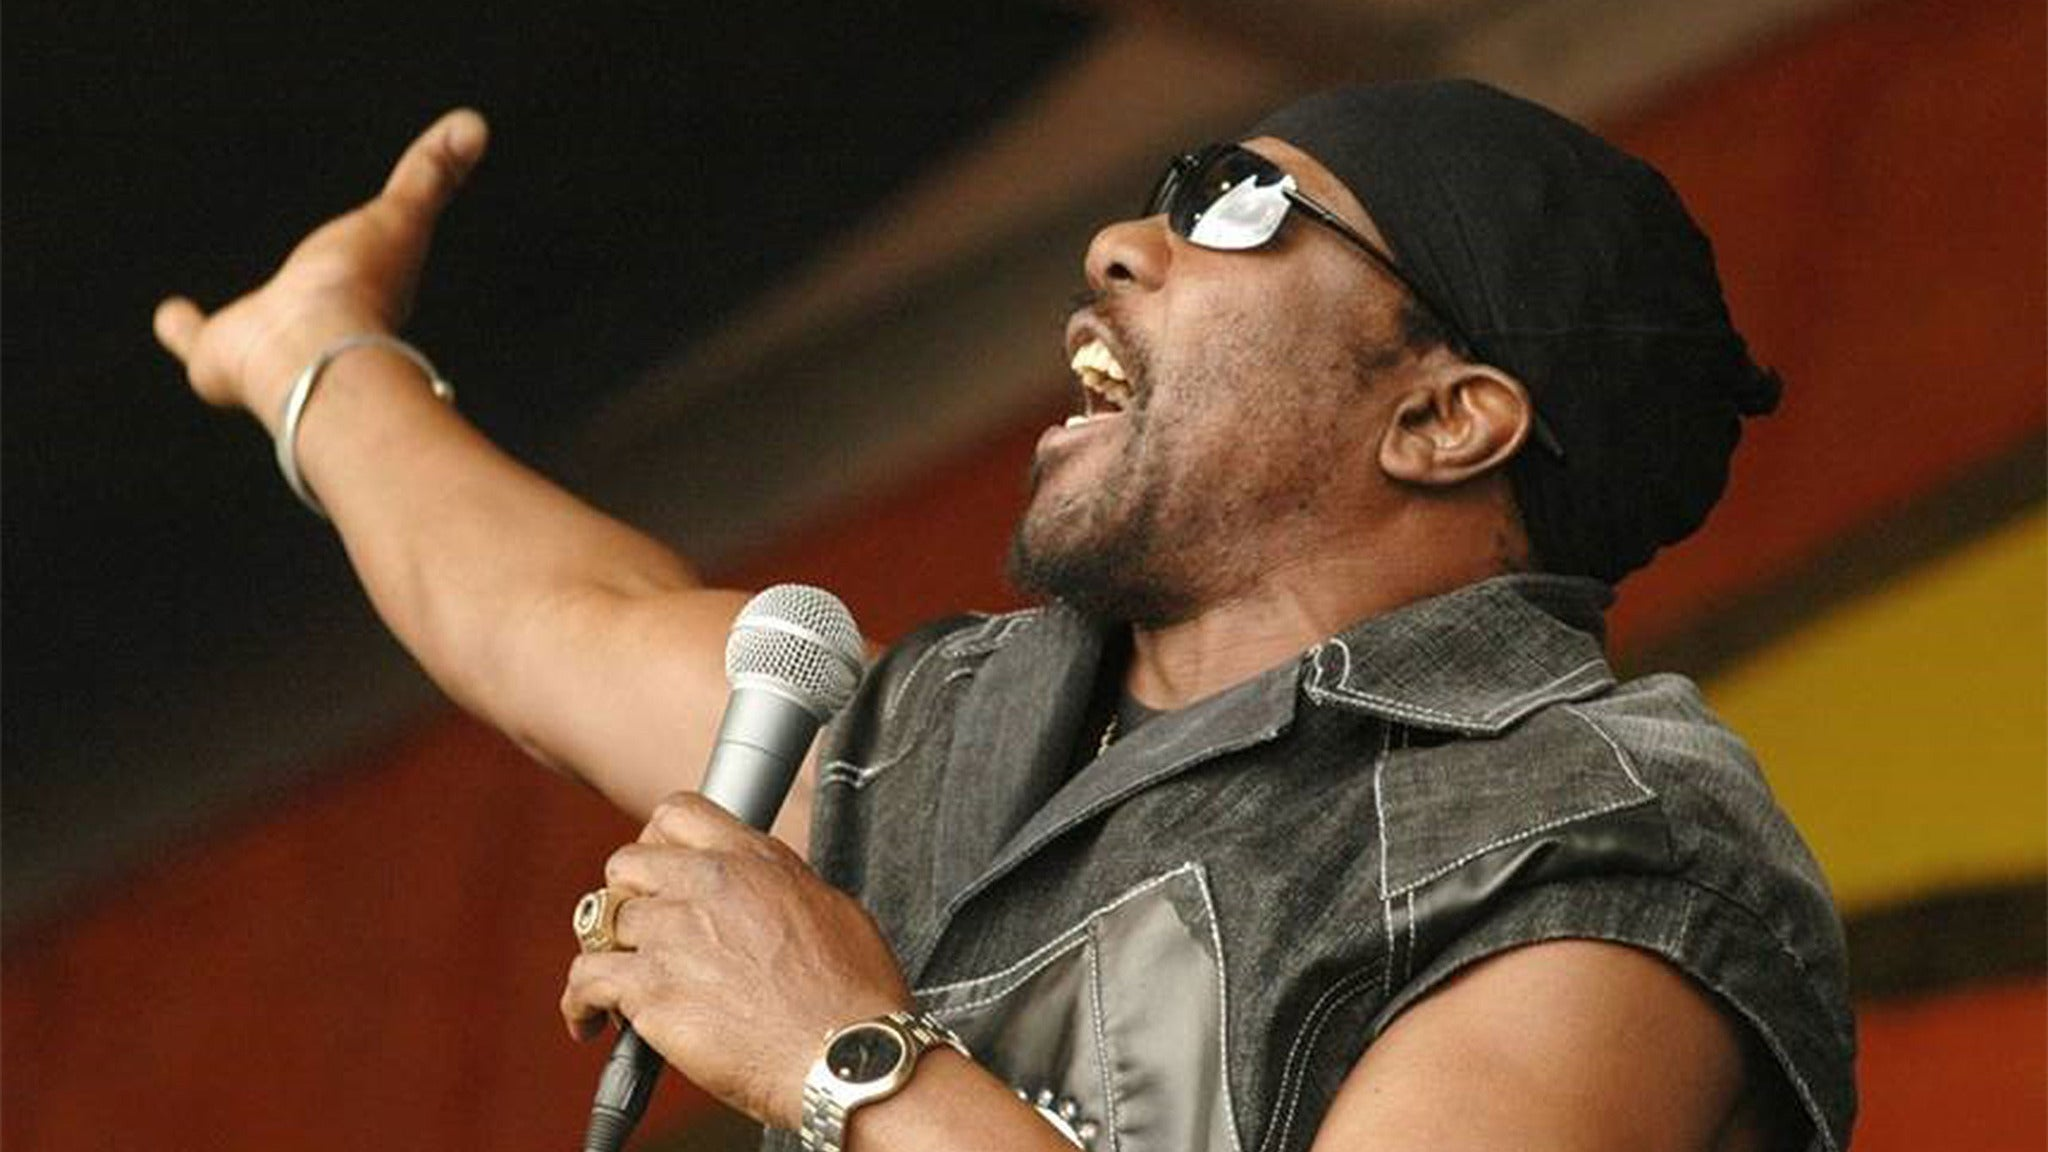 Toots and the Maytals at Culture Room - Ft Lauderdale, FL 33306